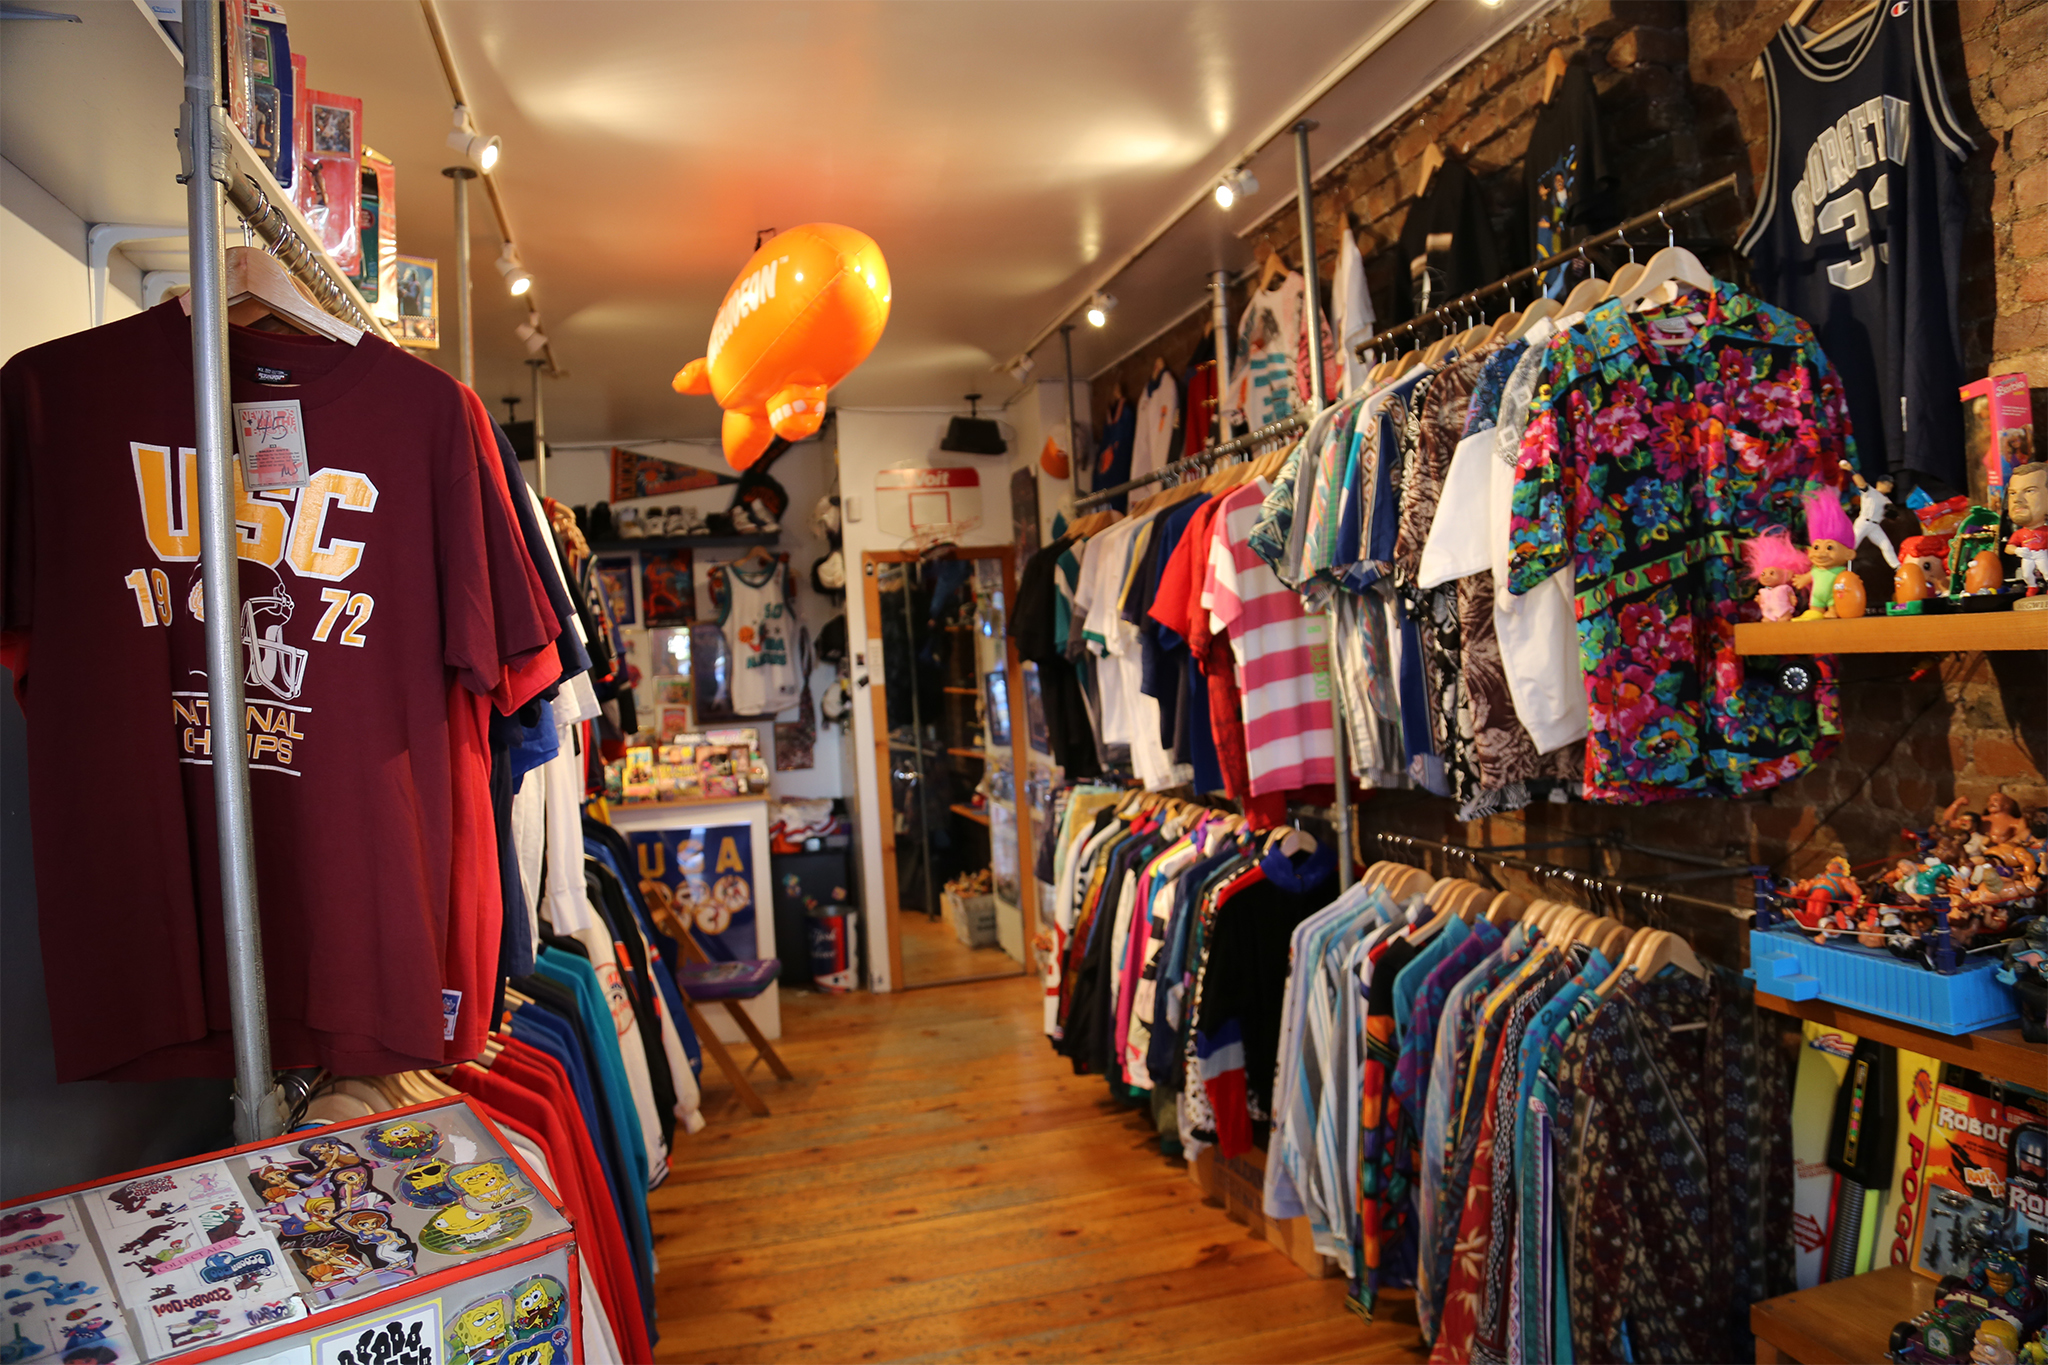 Vintage stores and thrift shops